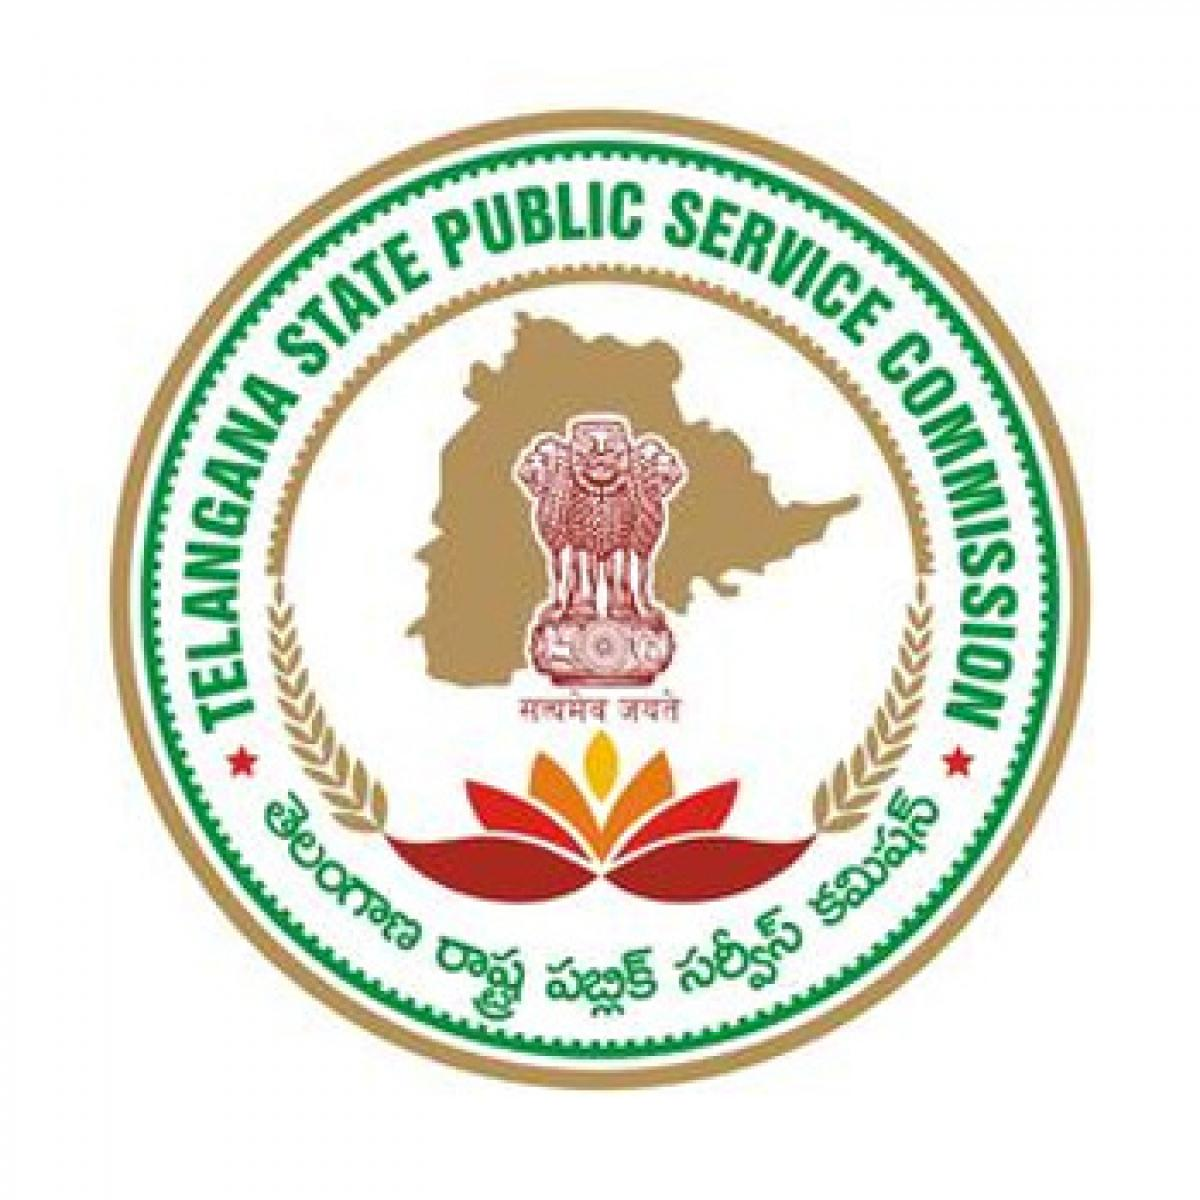 TSPSC to install mobile jammer at exam centres